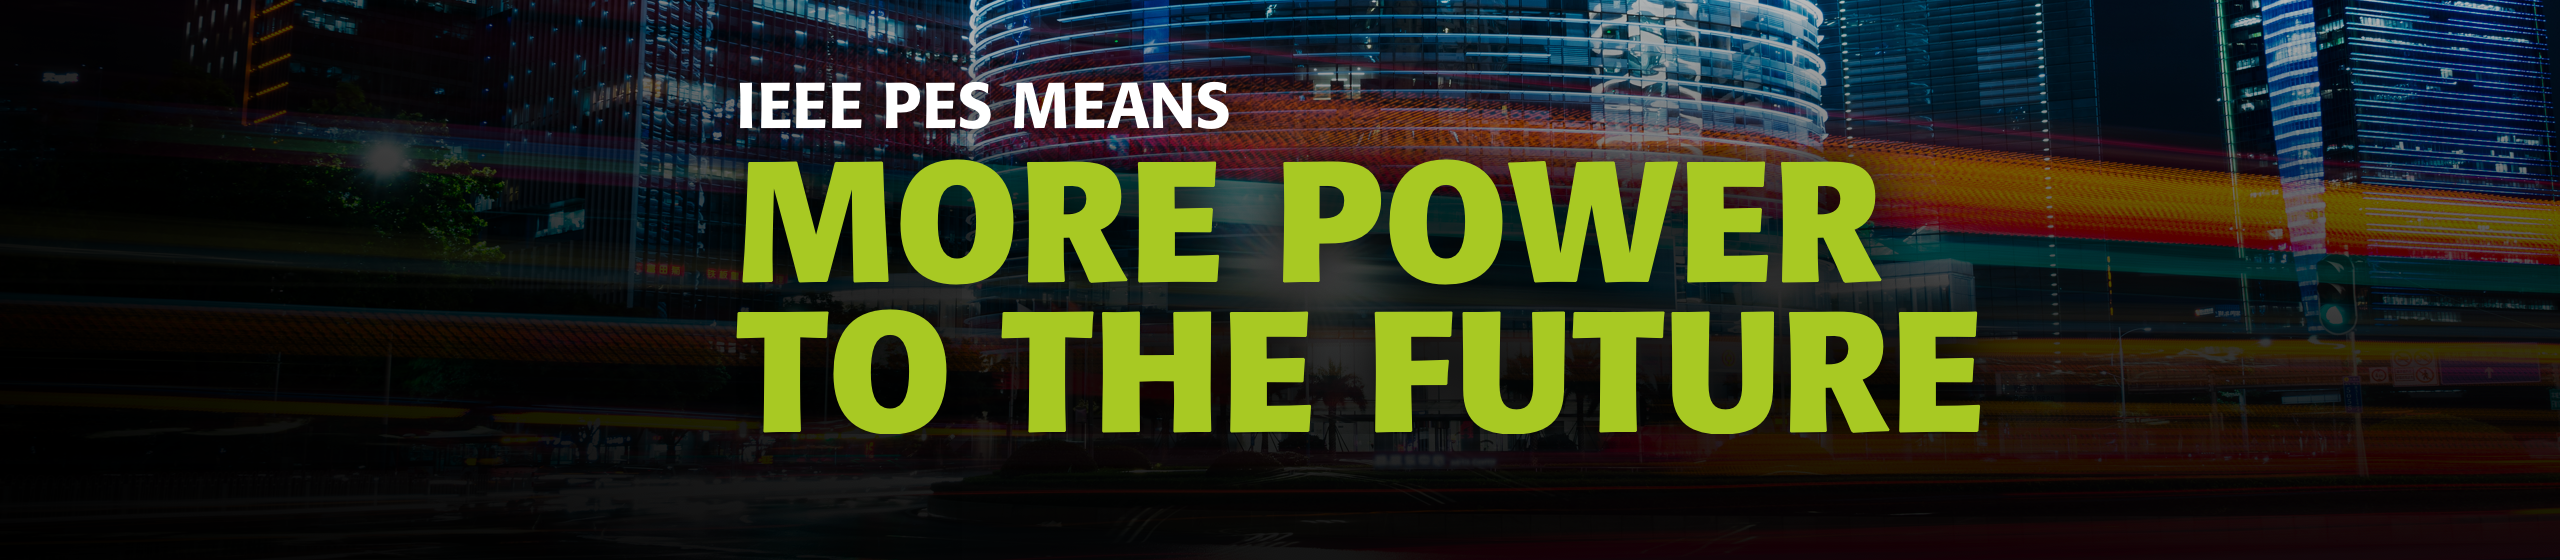 IEEE PES Means More Power to the Future